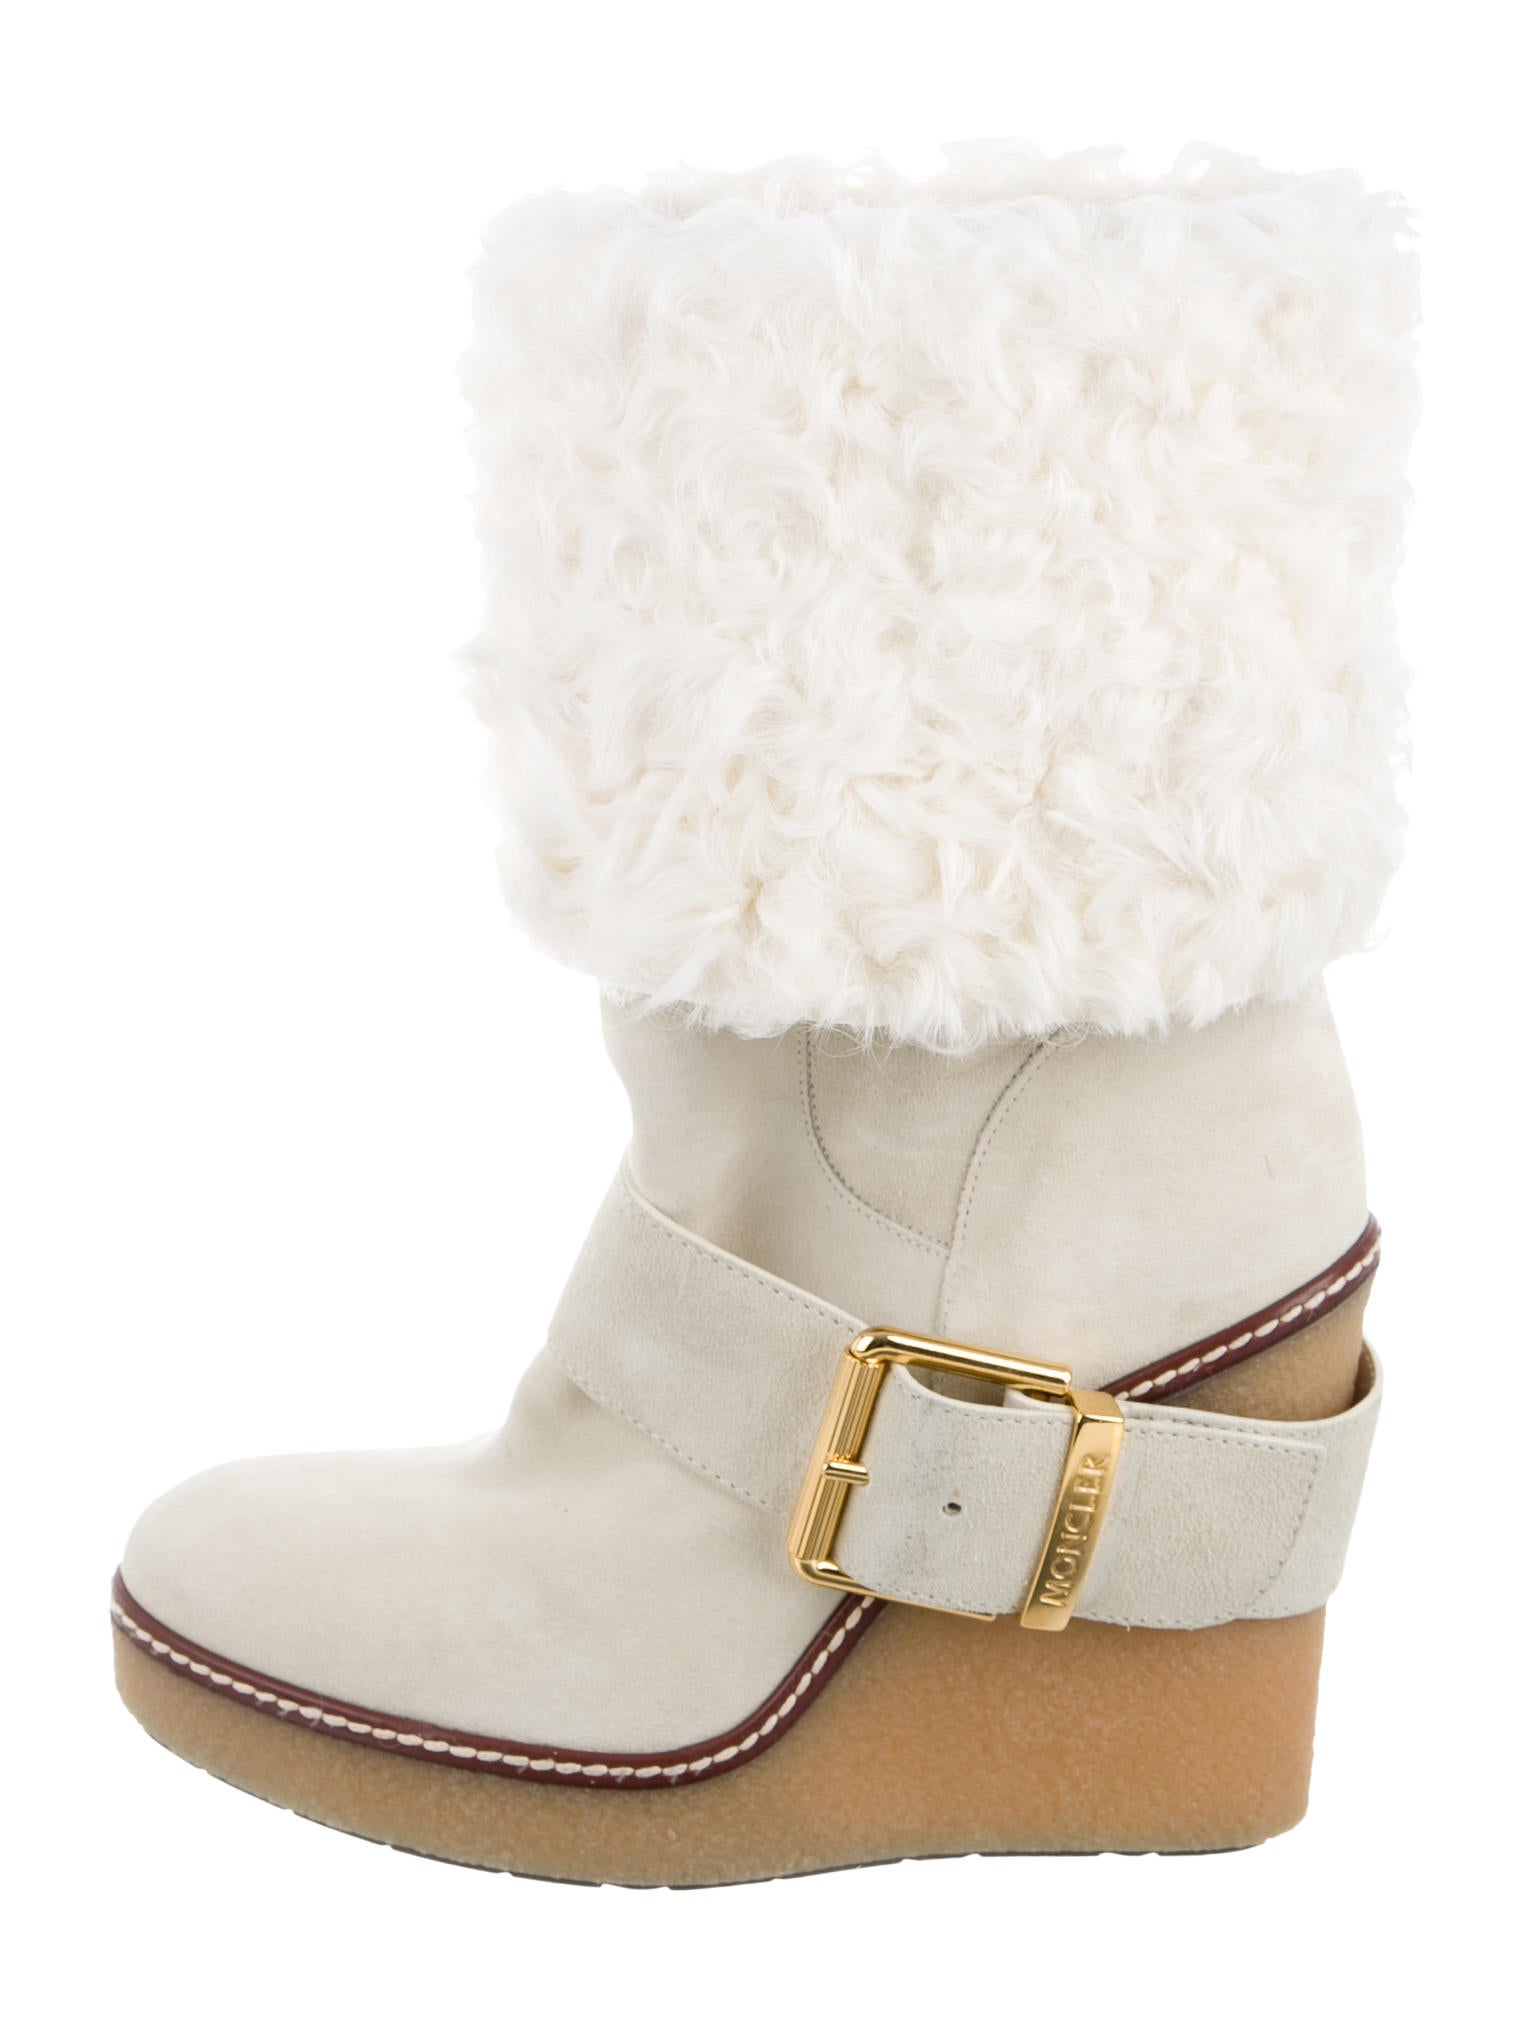 moncler suede shearling wedge boots shoes moc24734